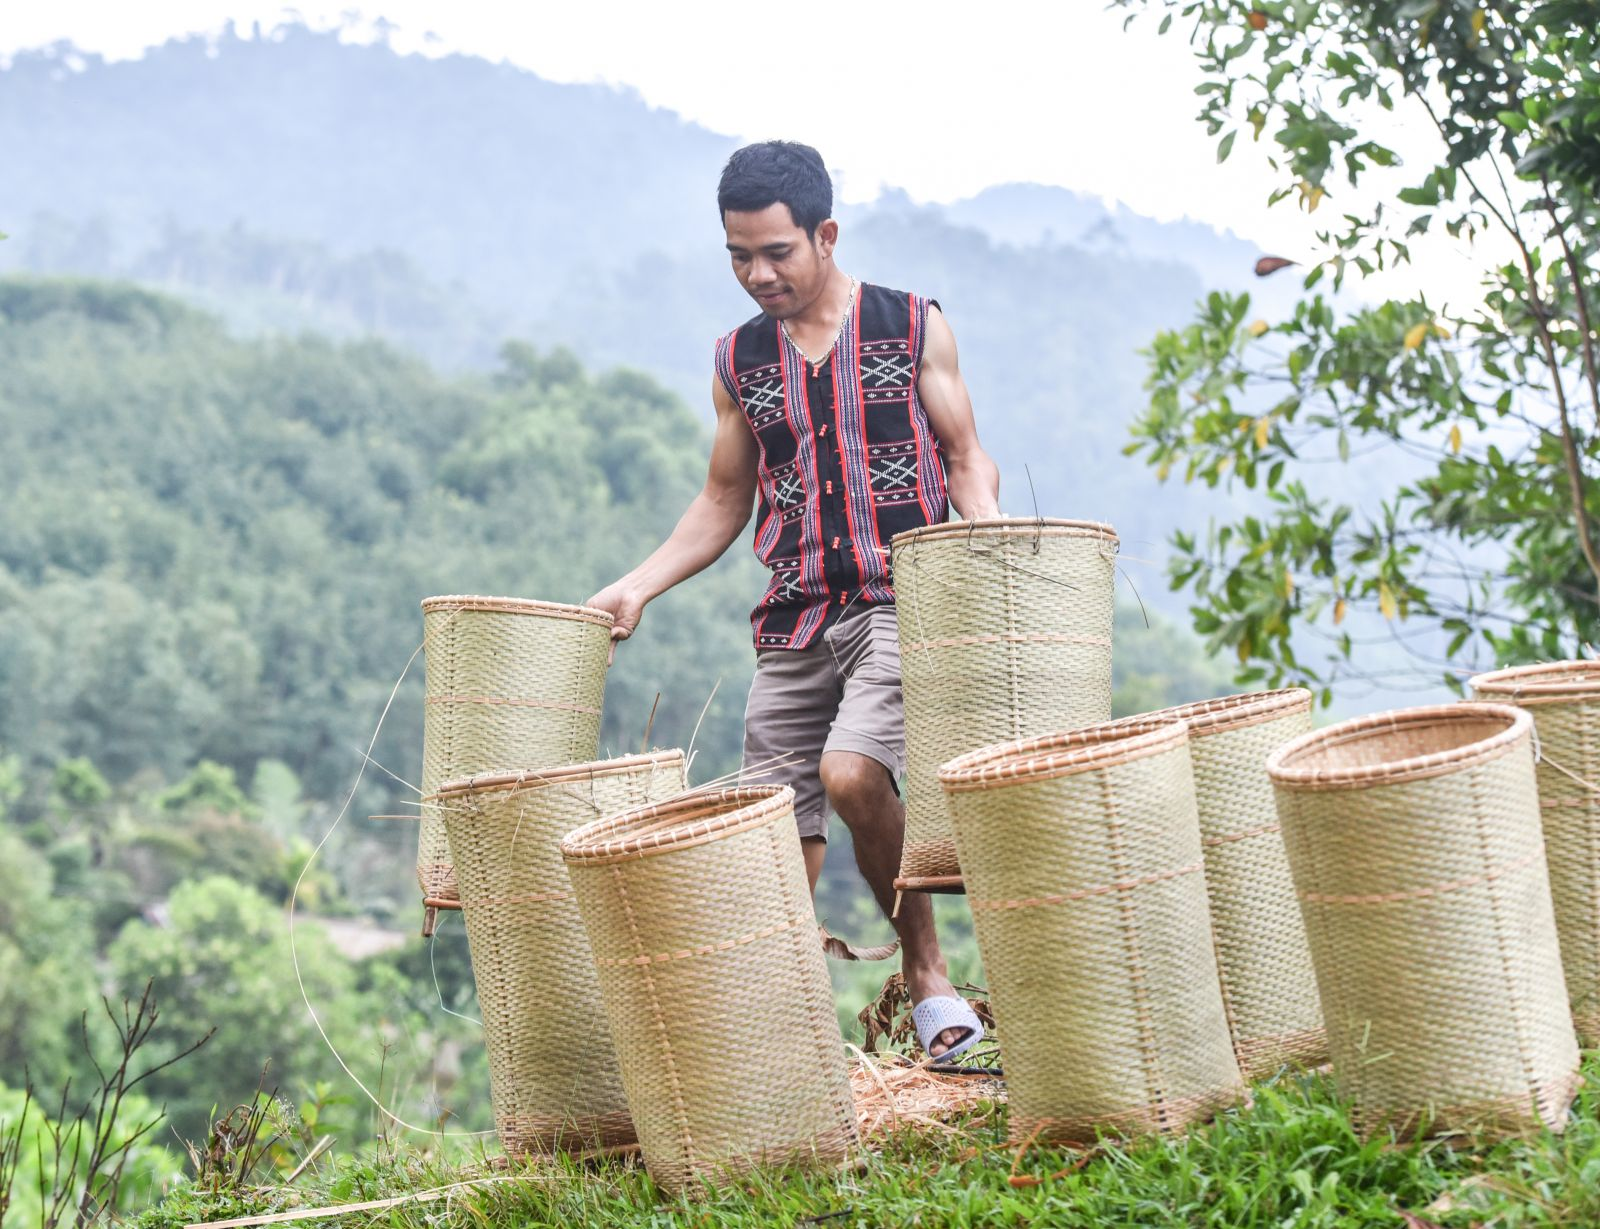 In the cool sunshine, the gùi baskets are dried to ensure durability